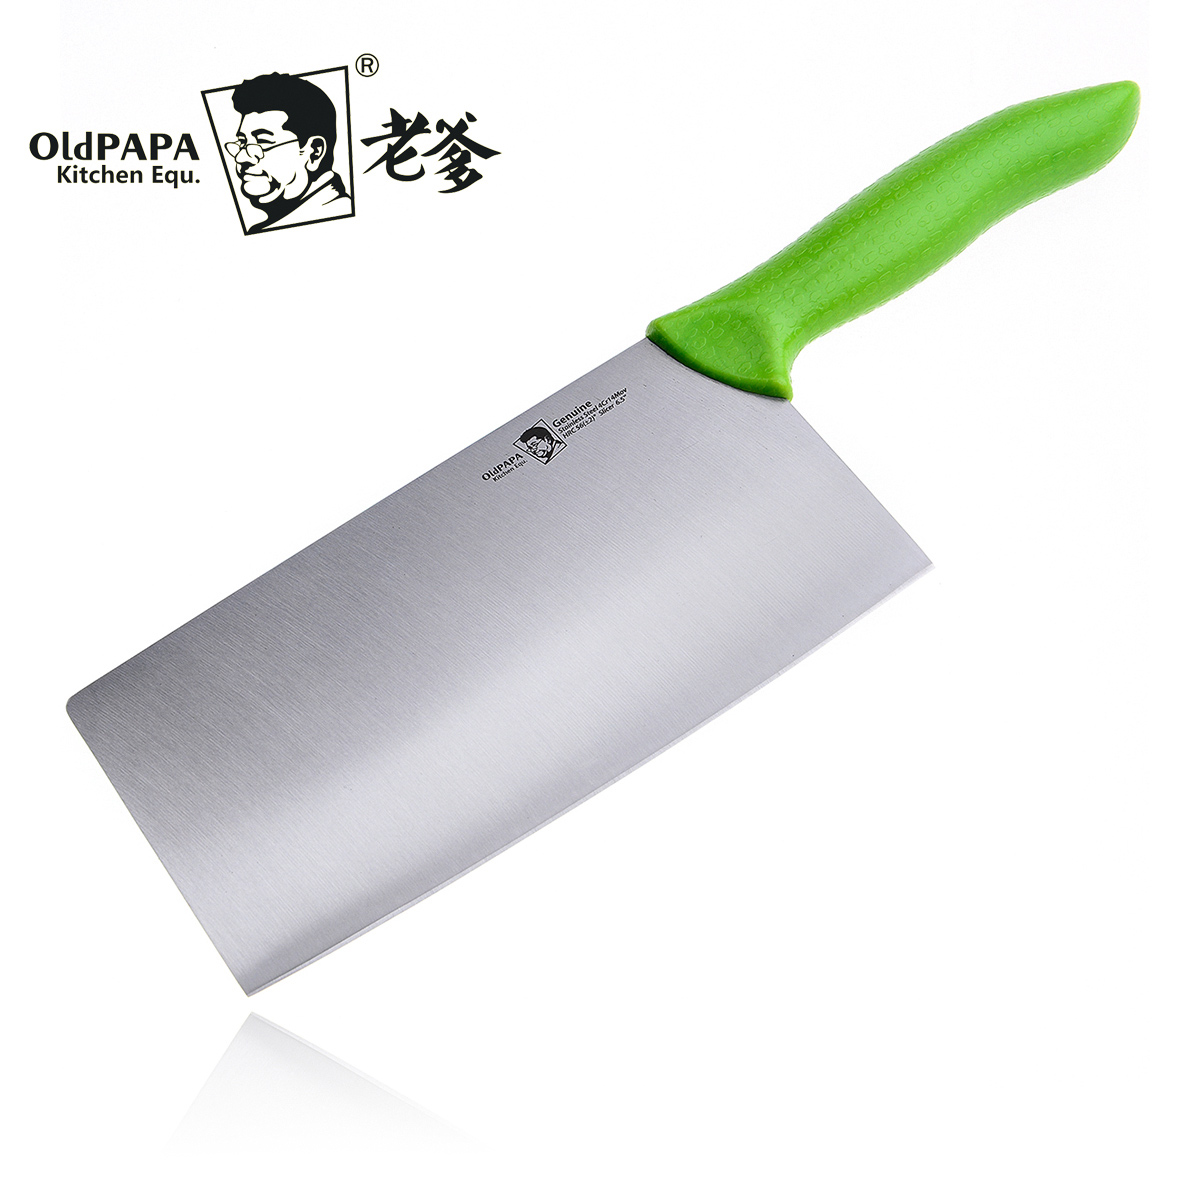 Household kitchen knives cooking tools cutting tool syllogistic arc ...